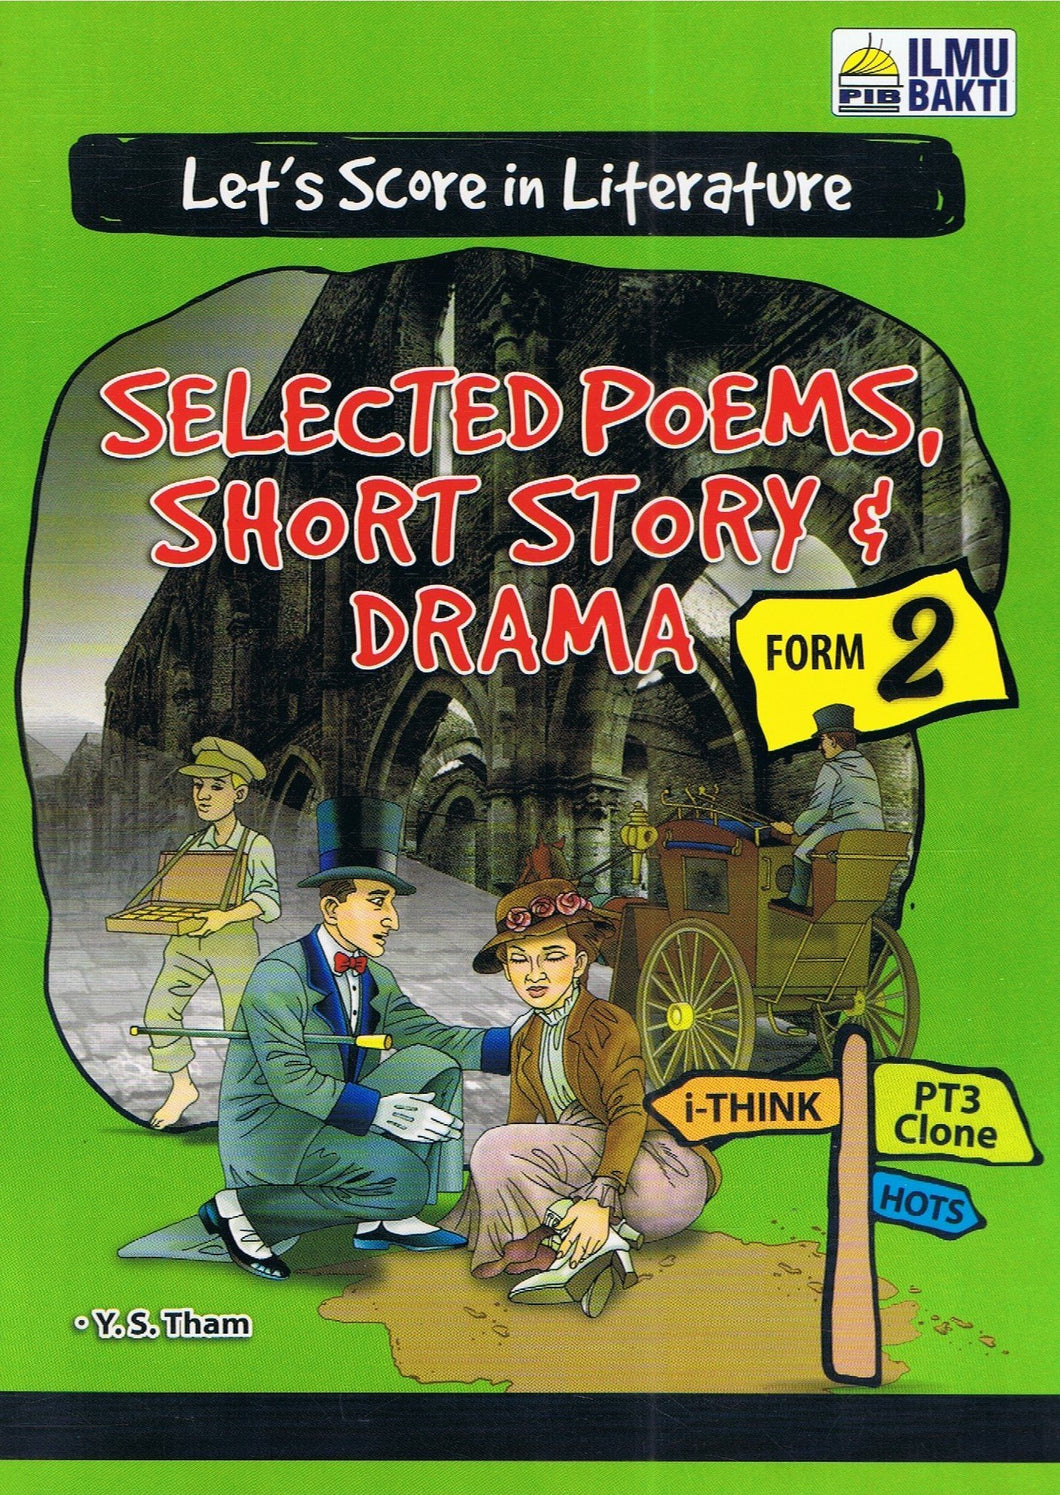 Ilmu Bakti-Let's Score in Literature: Selected Poems, Short Story & Drama Form 2-9789674548261-BukuDBP.com